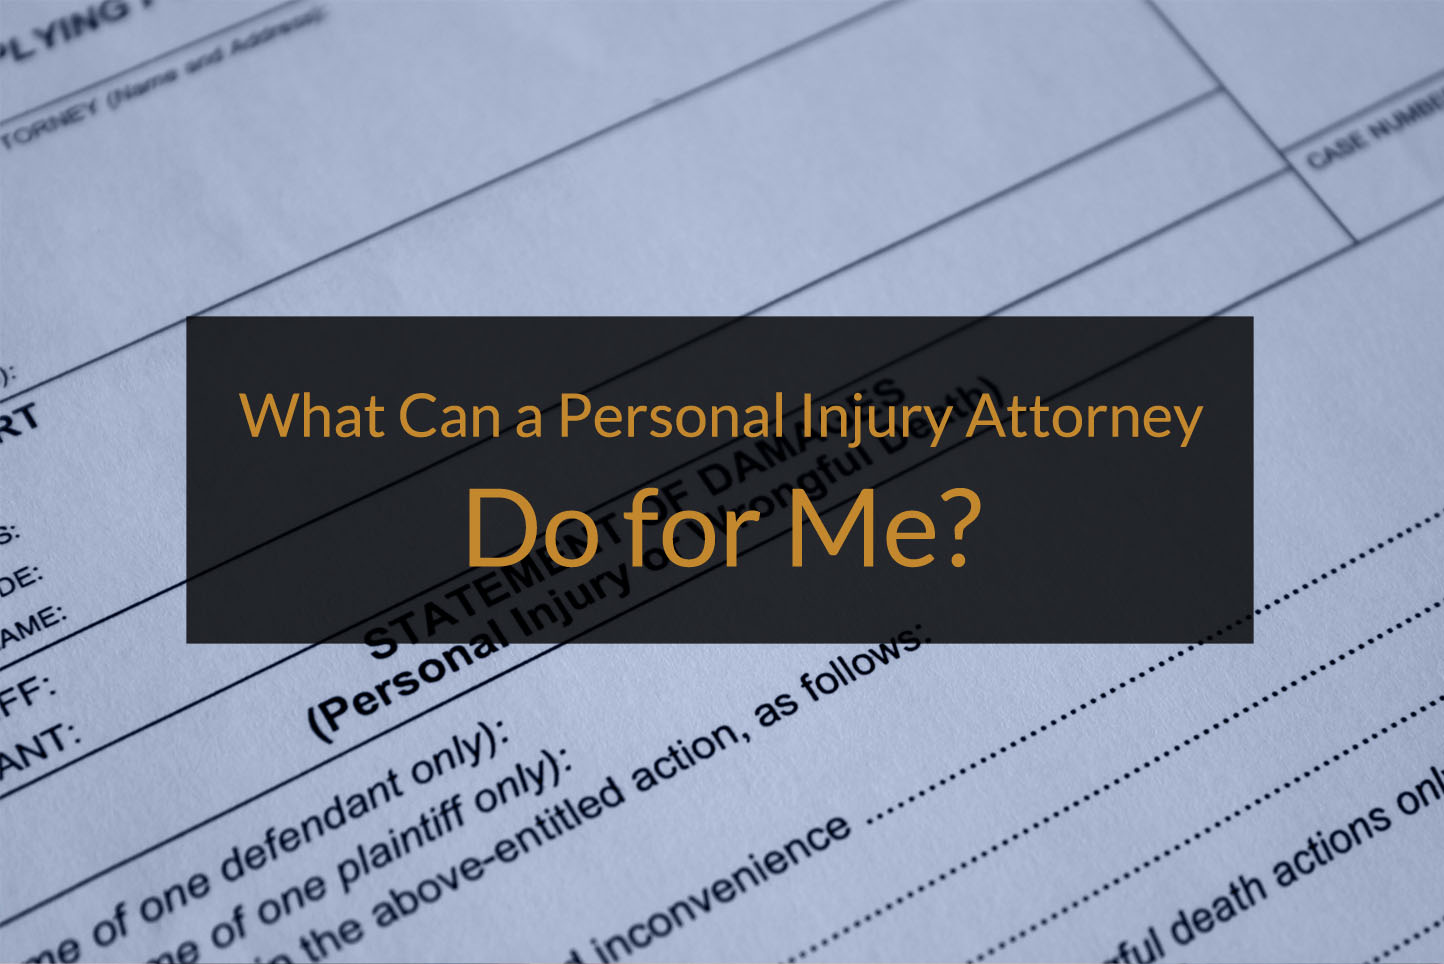 what can a personal injury attorney do for me